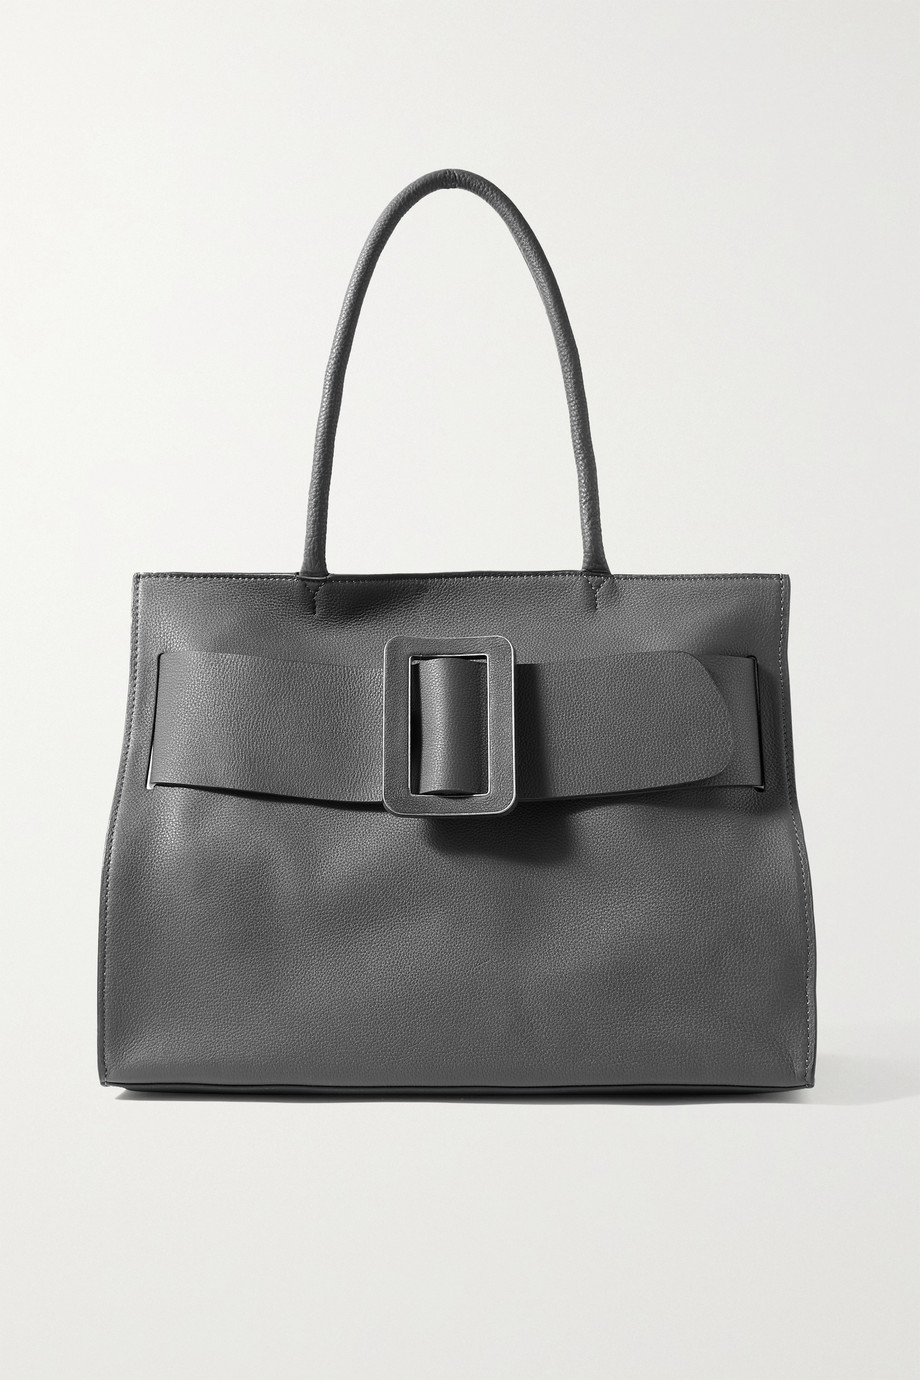 BOYY Bobby Soft buckled leather tote